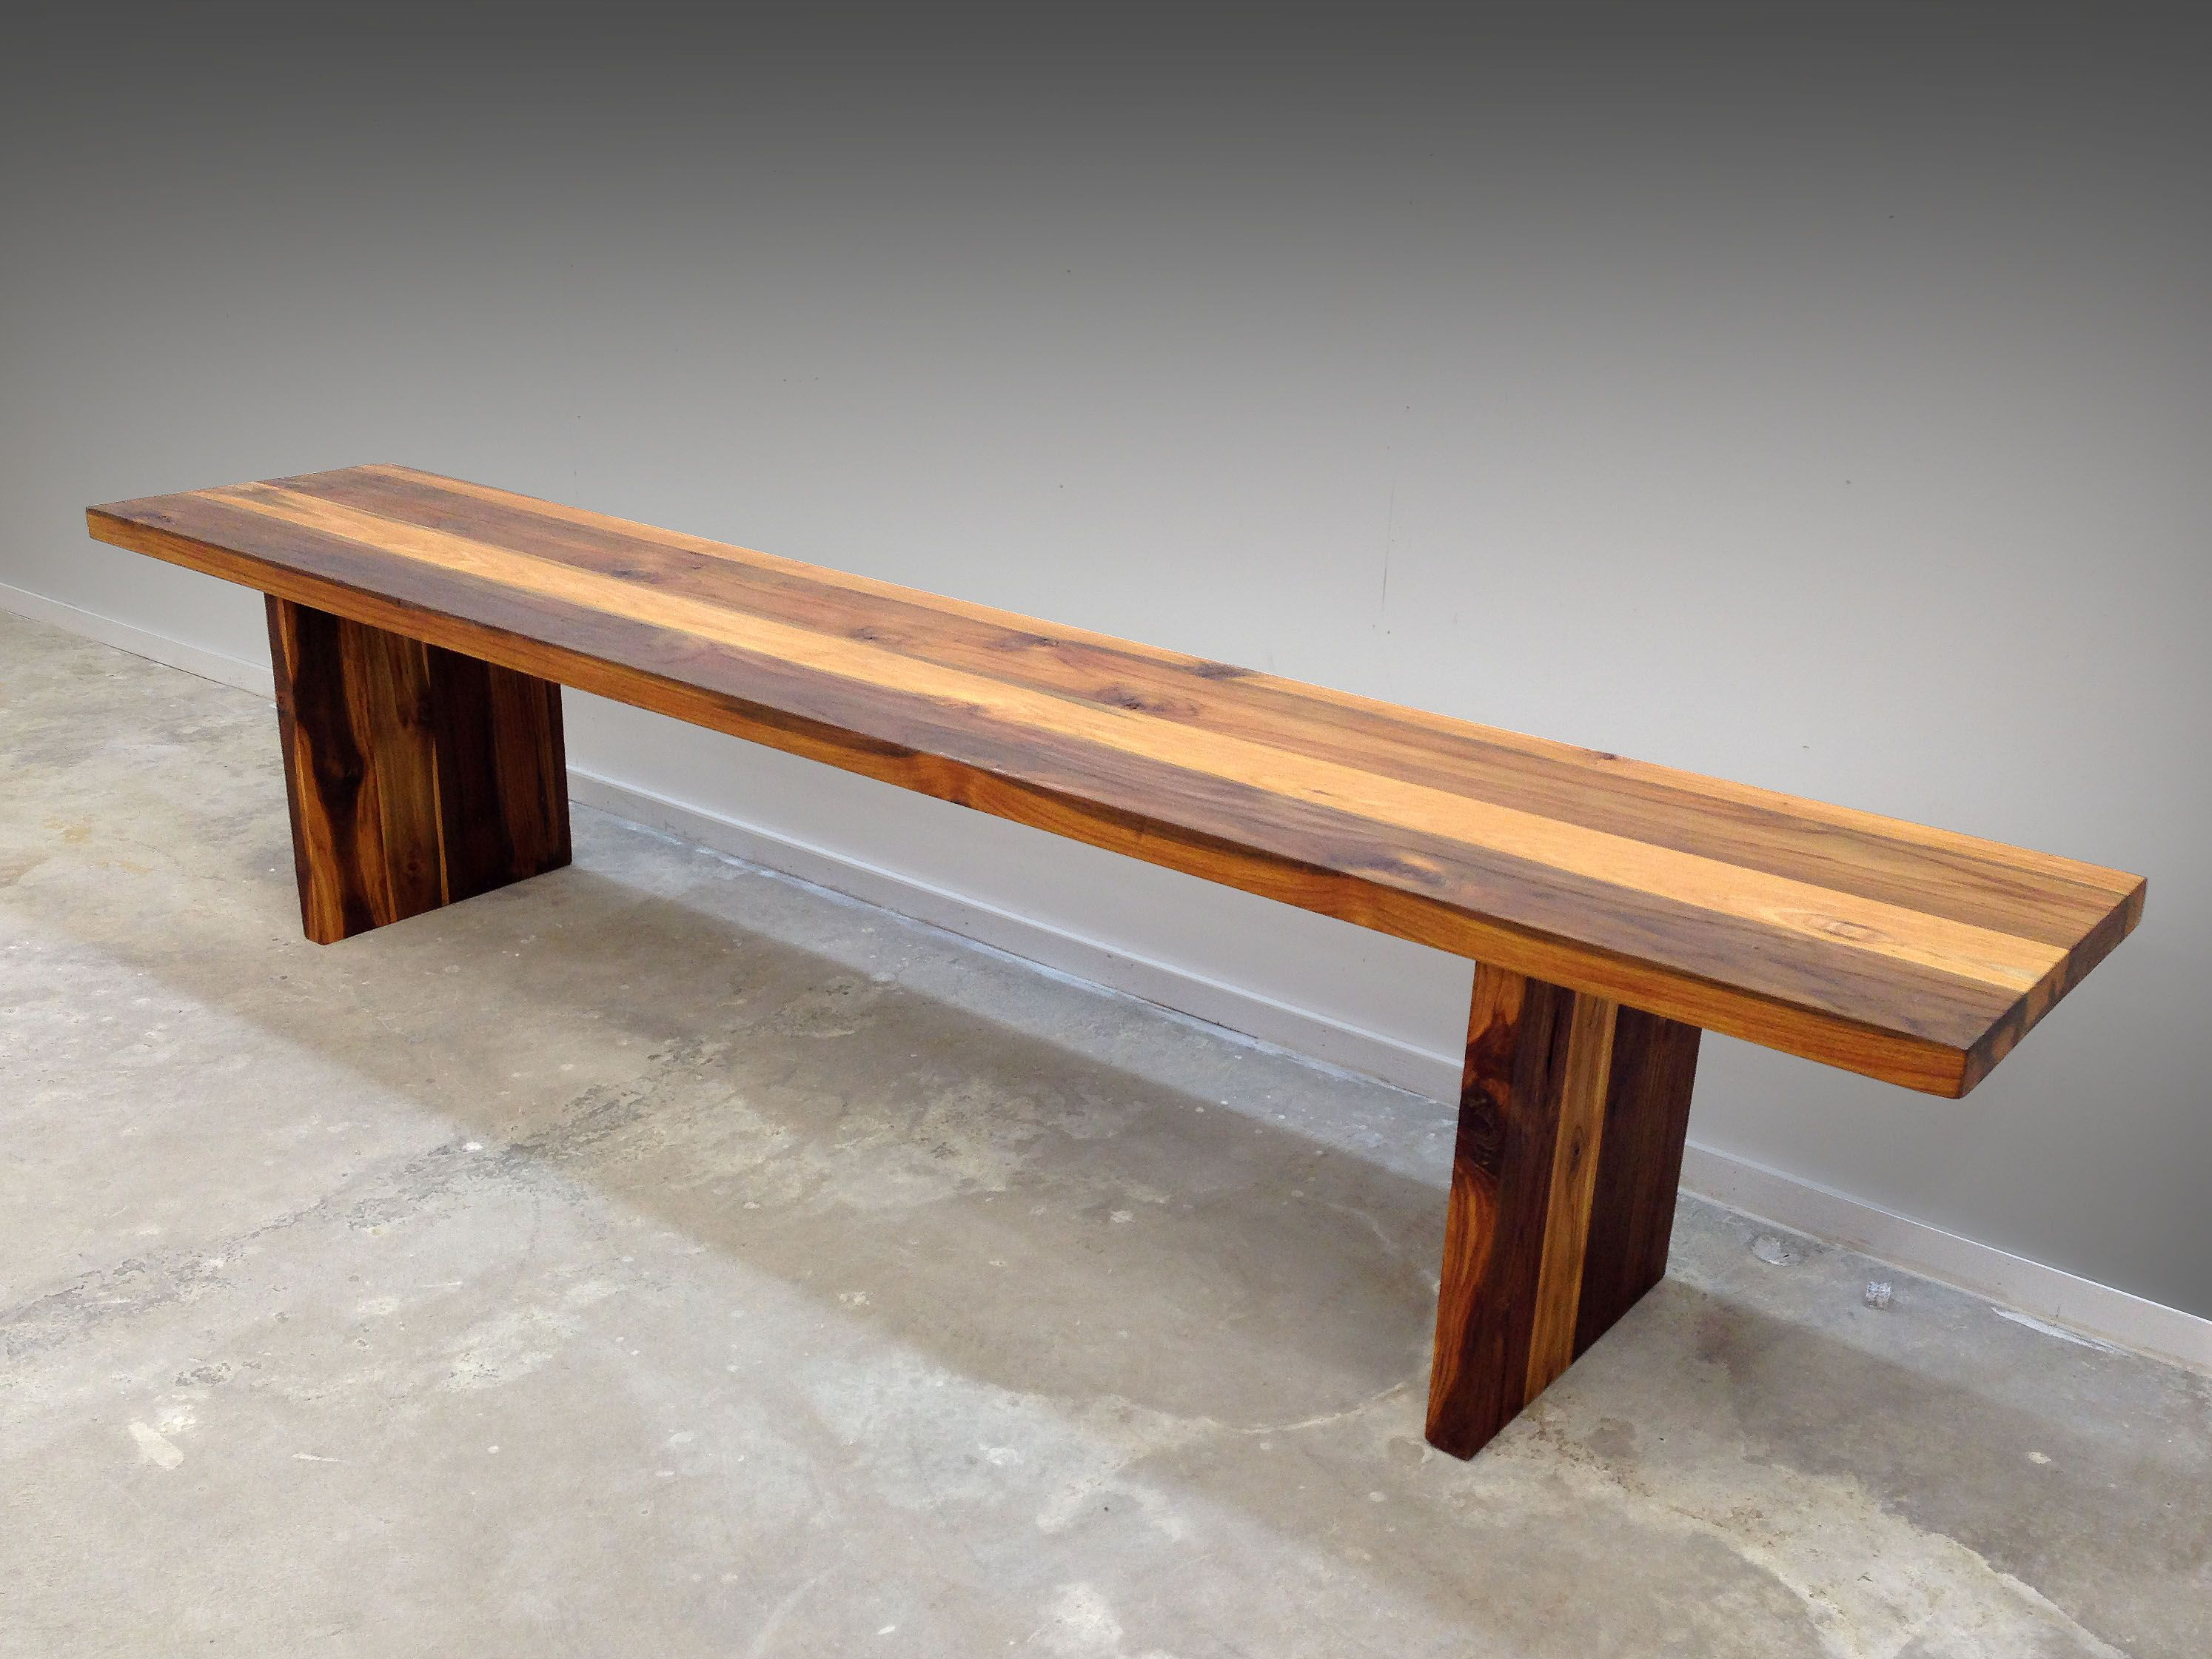 David Alan Collection   Reclaimed Teak Bench, Recycled Wood.  Www.thedavidalancollection.com